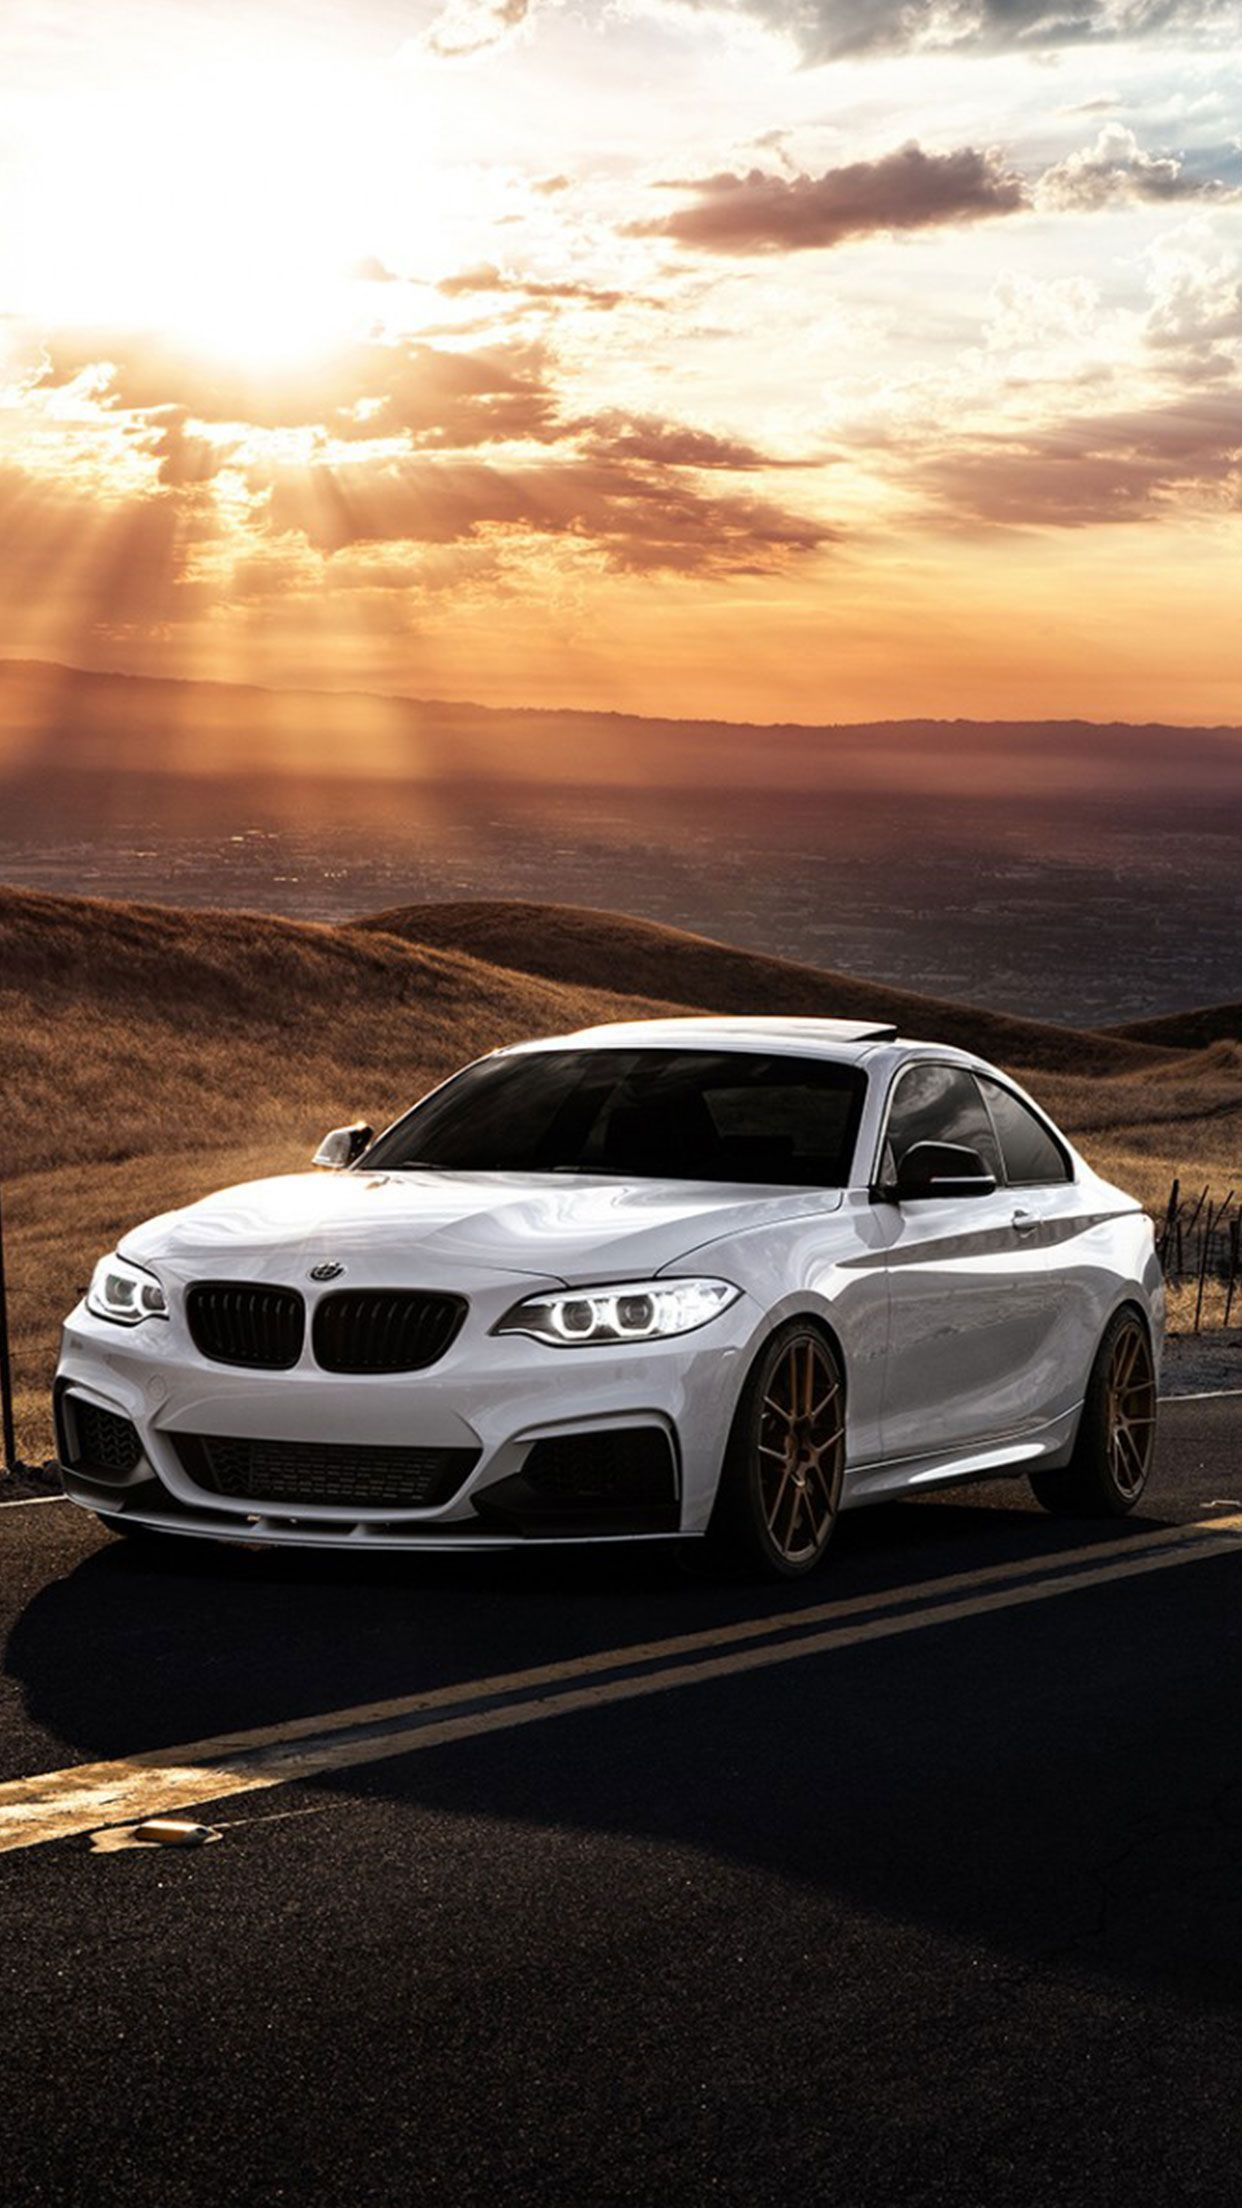 Download Free BMW Wallpaper For iPhone